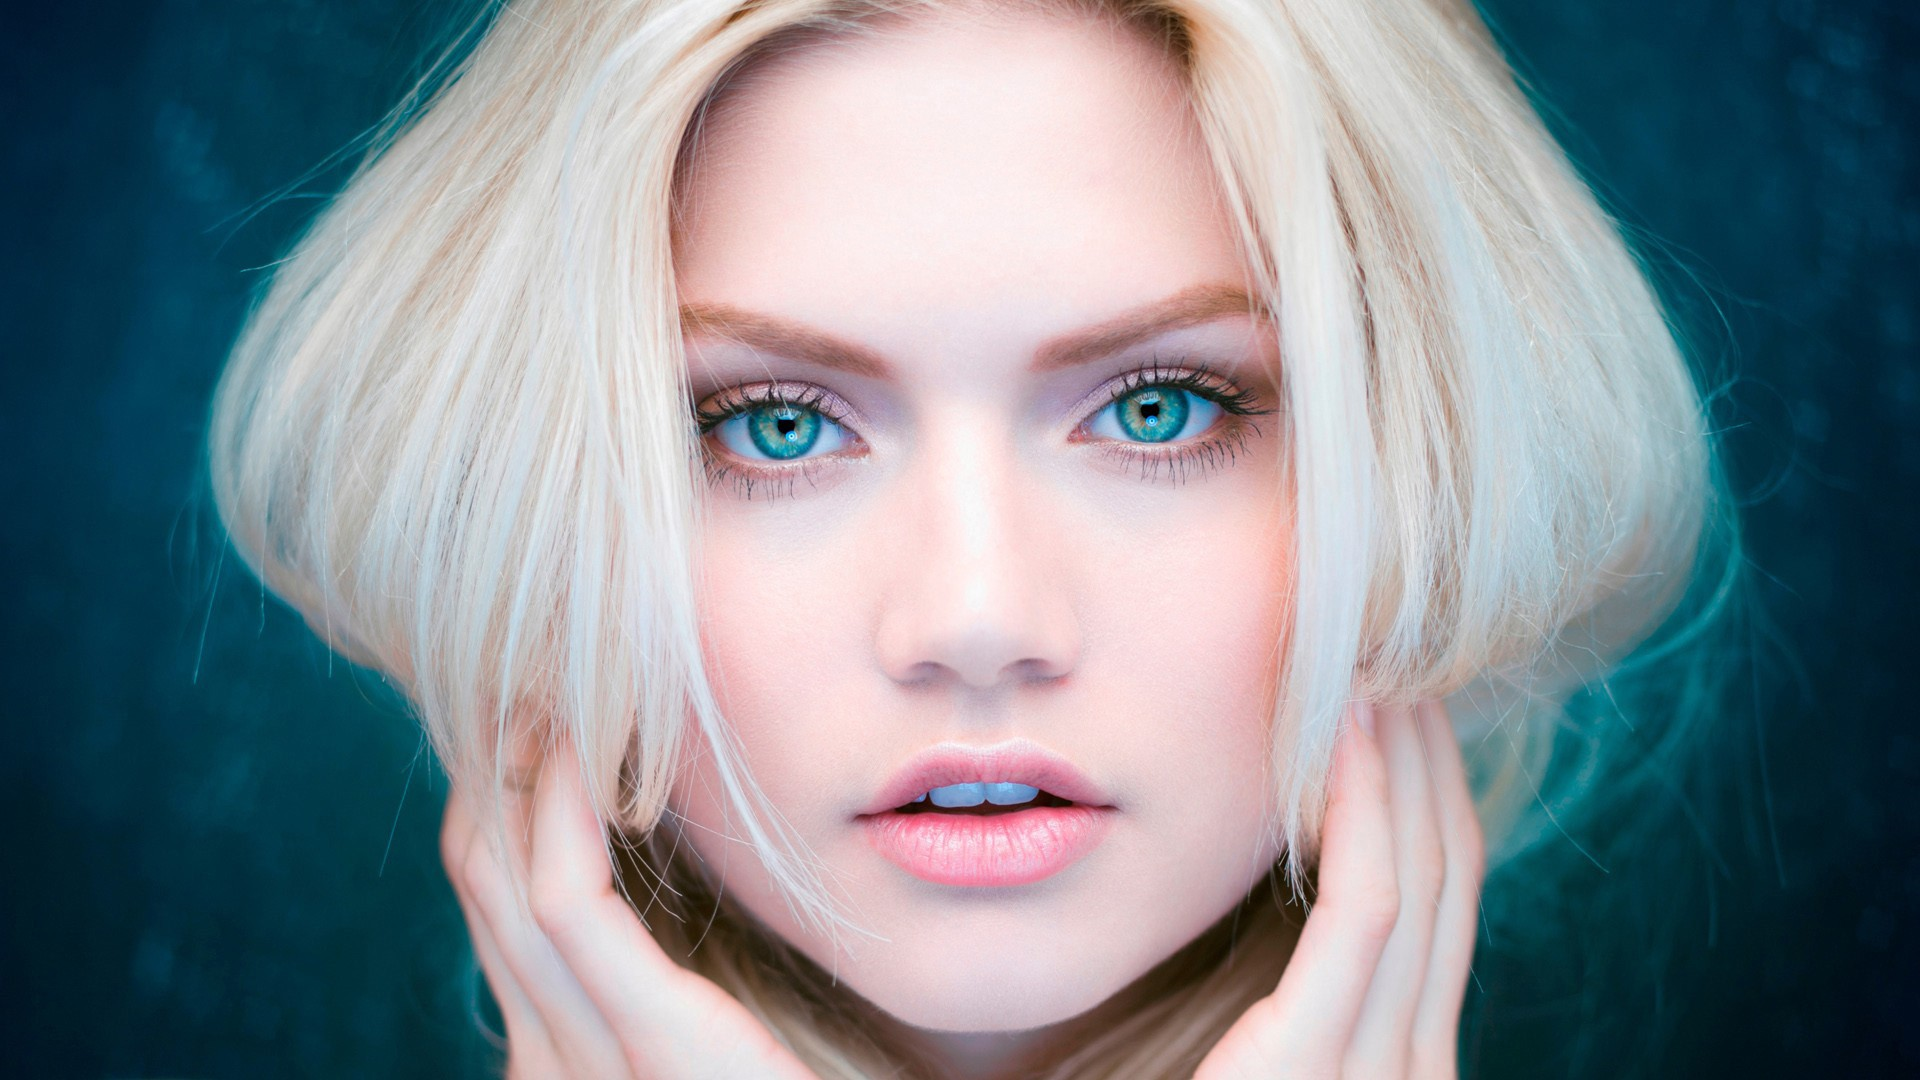 Beautiful Eyes Blonde Girl Hd Girls 4k Wallpapers Images Backgrounds Photos And Pictures